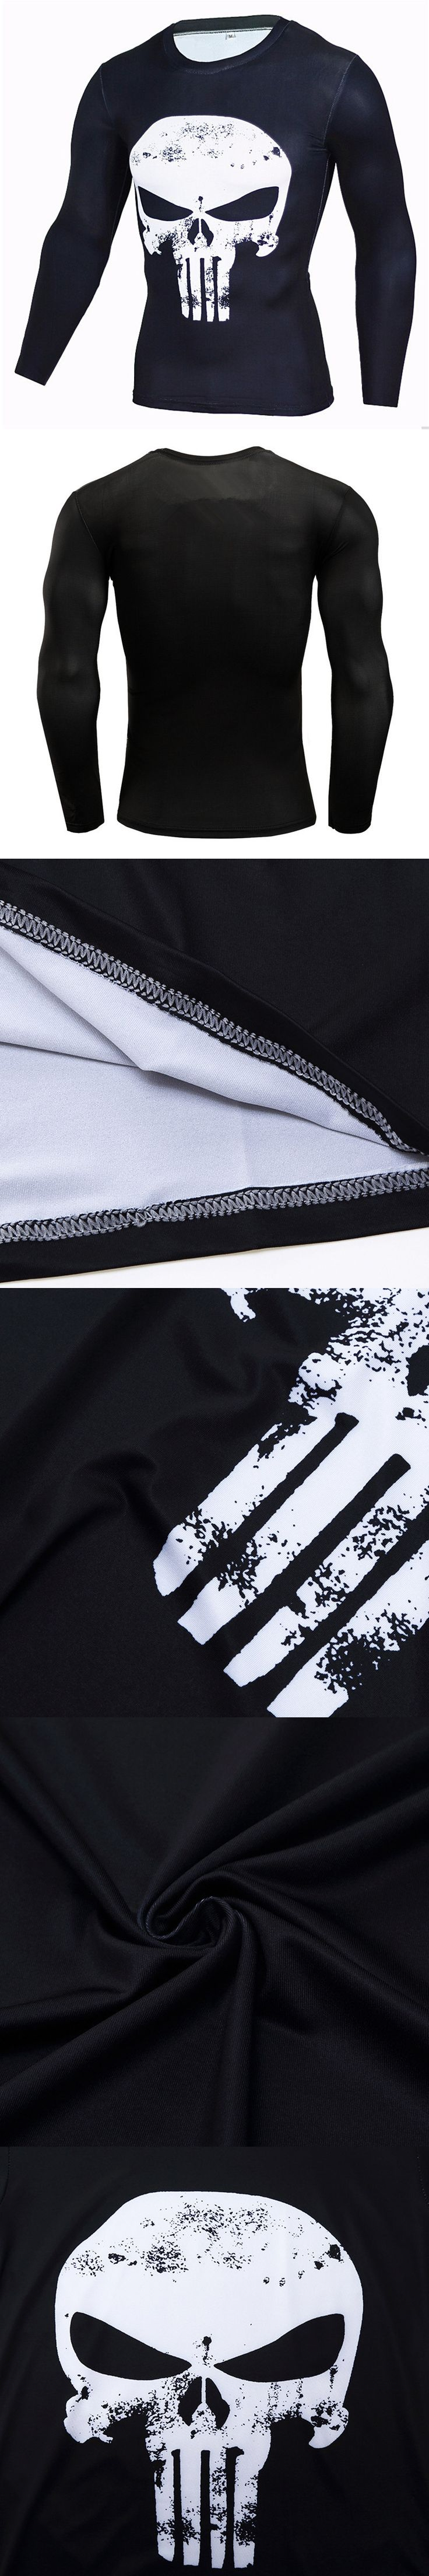 Punisher 3D Printed T-shirts Men Compression Shirts Long Sleeve Cosplay Costume crossfit fitness Clothing Tops Male Black skull